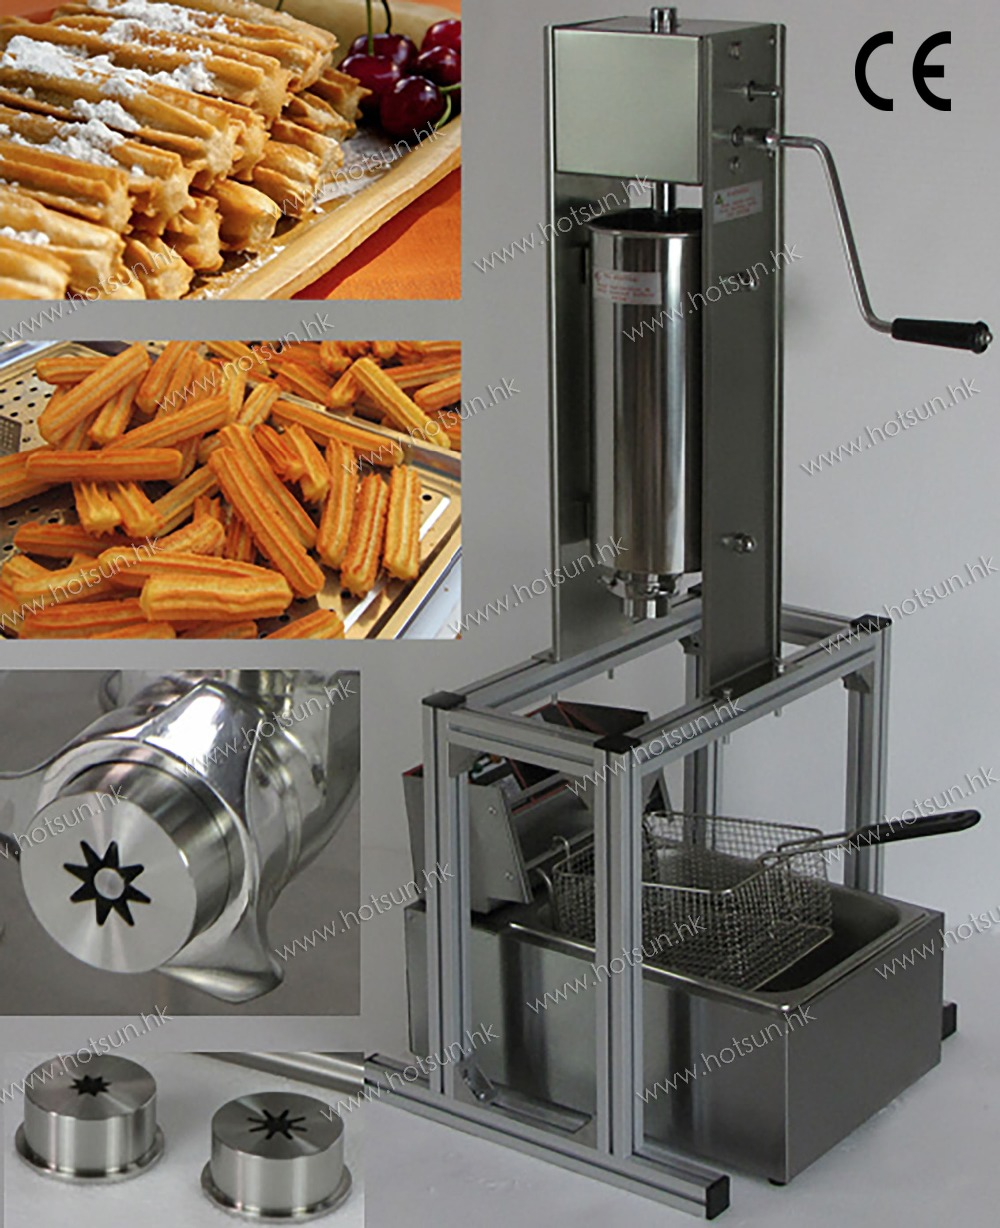 2 in 1 5L Manual Spainish Churros Machine Maker with Support + 6L 110v 220v Electric Deep Fryer 5l stainless steel spanish churro maker fried dough sticks machine with 6l electric fryer commercial churros machine